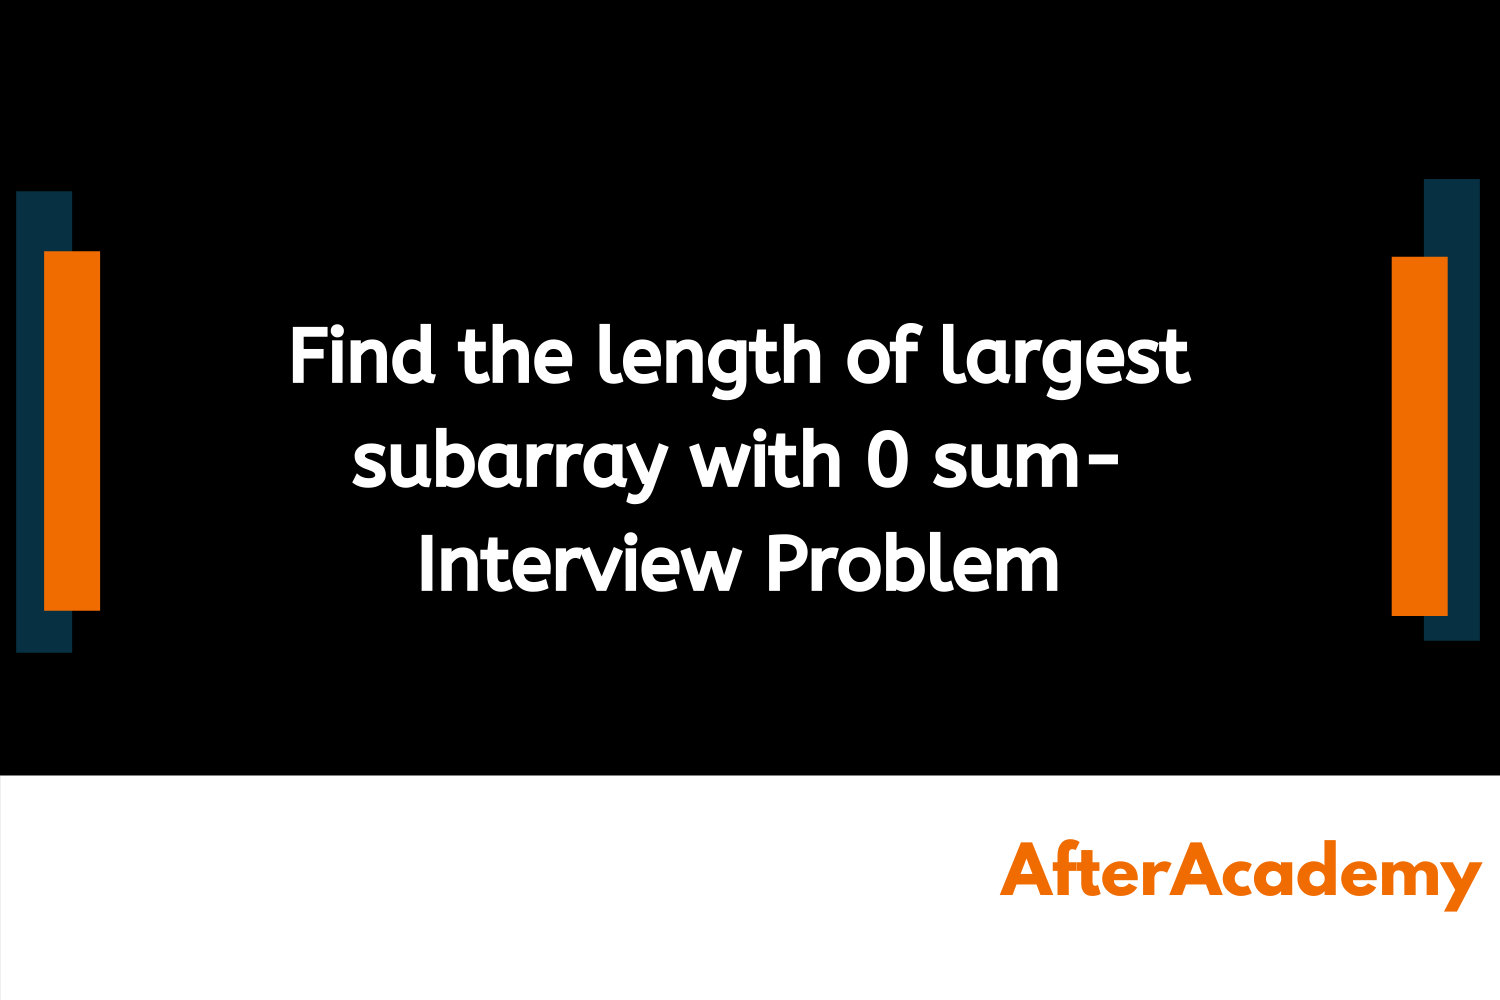 Find the length of largest subarray with 0 sum